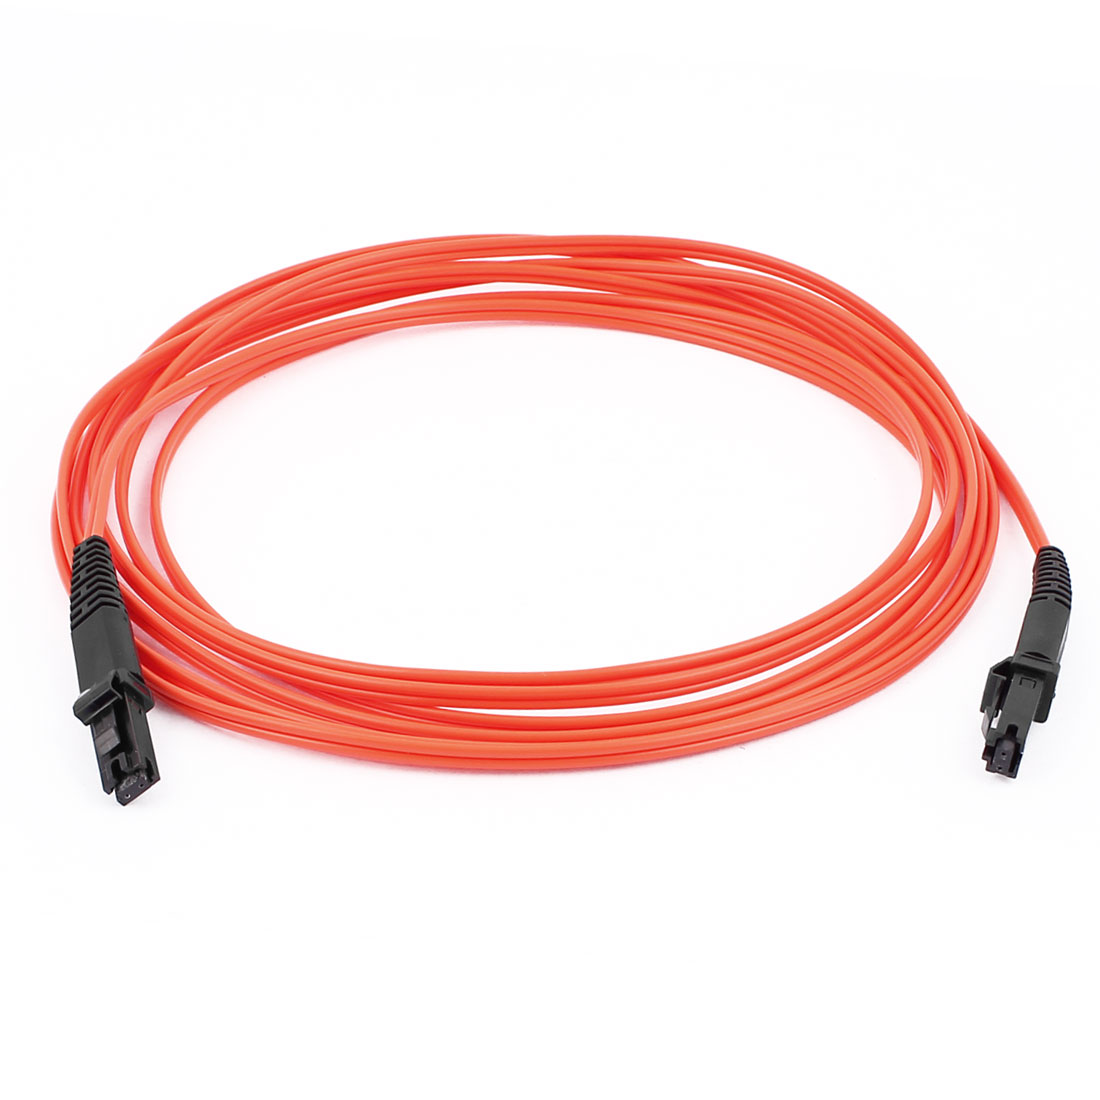 MTRJ-MTRJ 50/125 Duplex Multimode Optic Fiber Optical Cable Red 3.0M